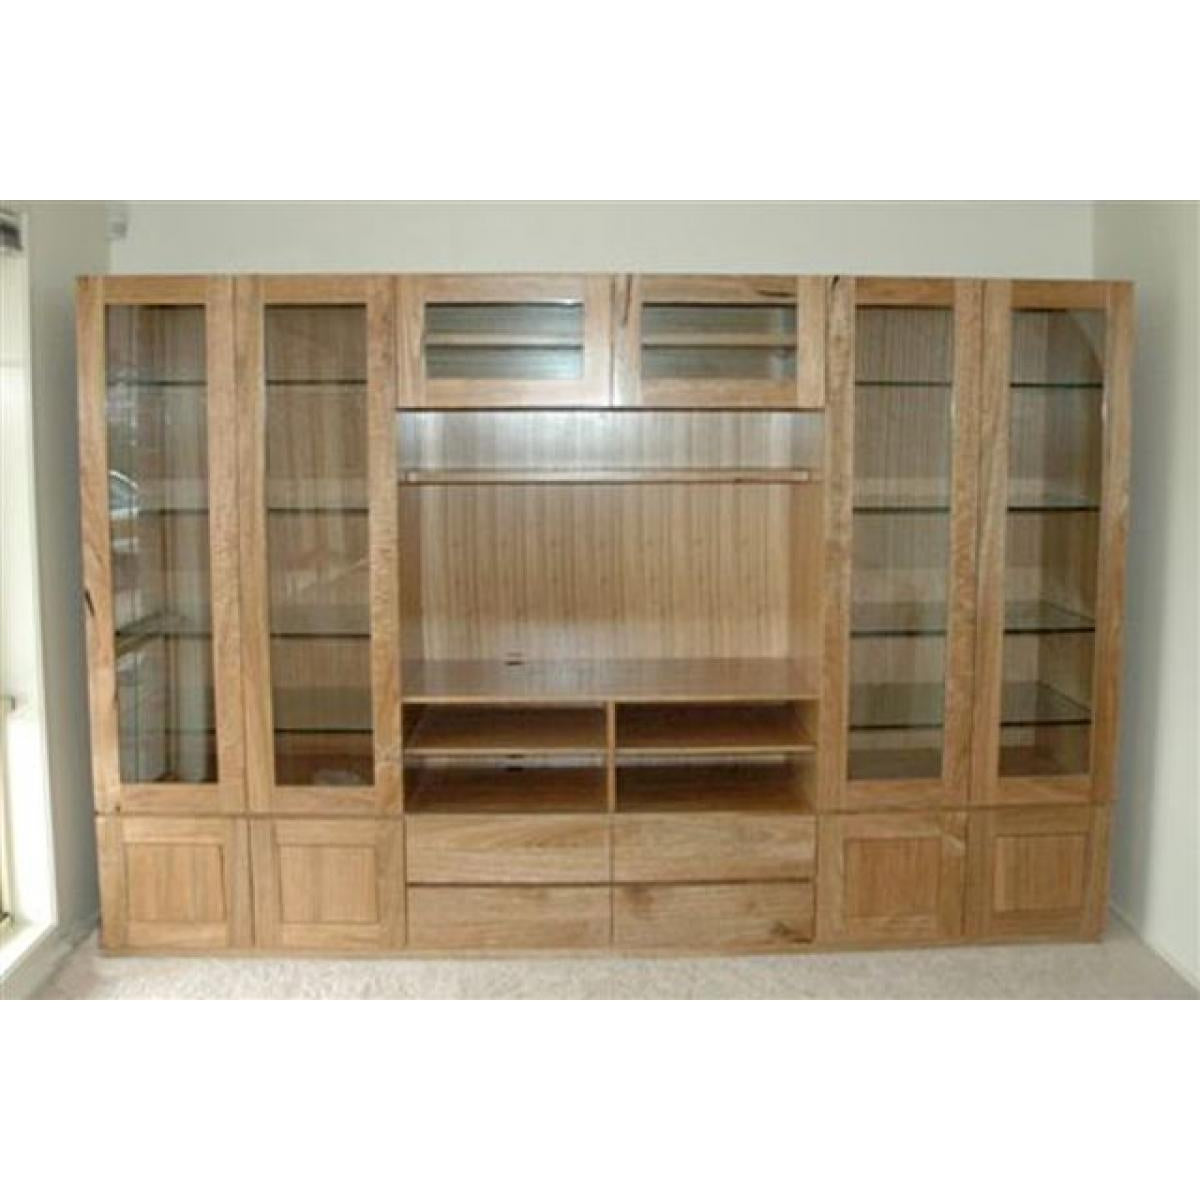 Custom spotted gum wall unit-bookcase-Wildwood Designs Furniture